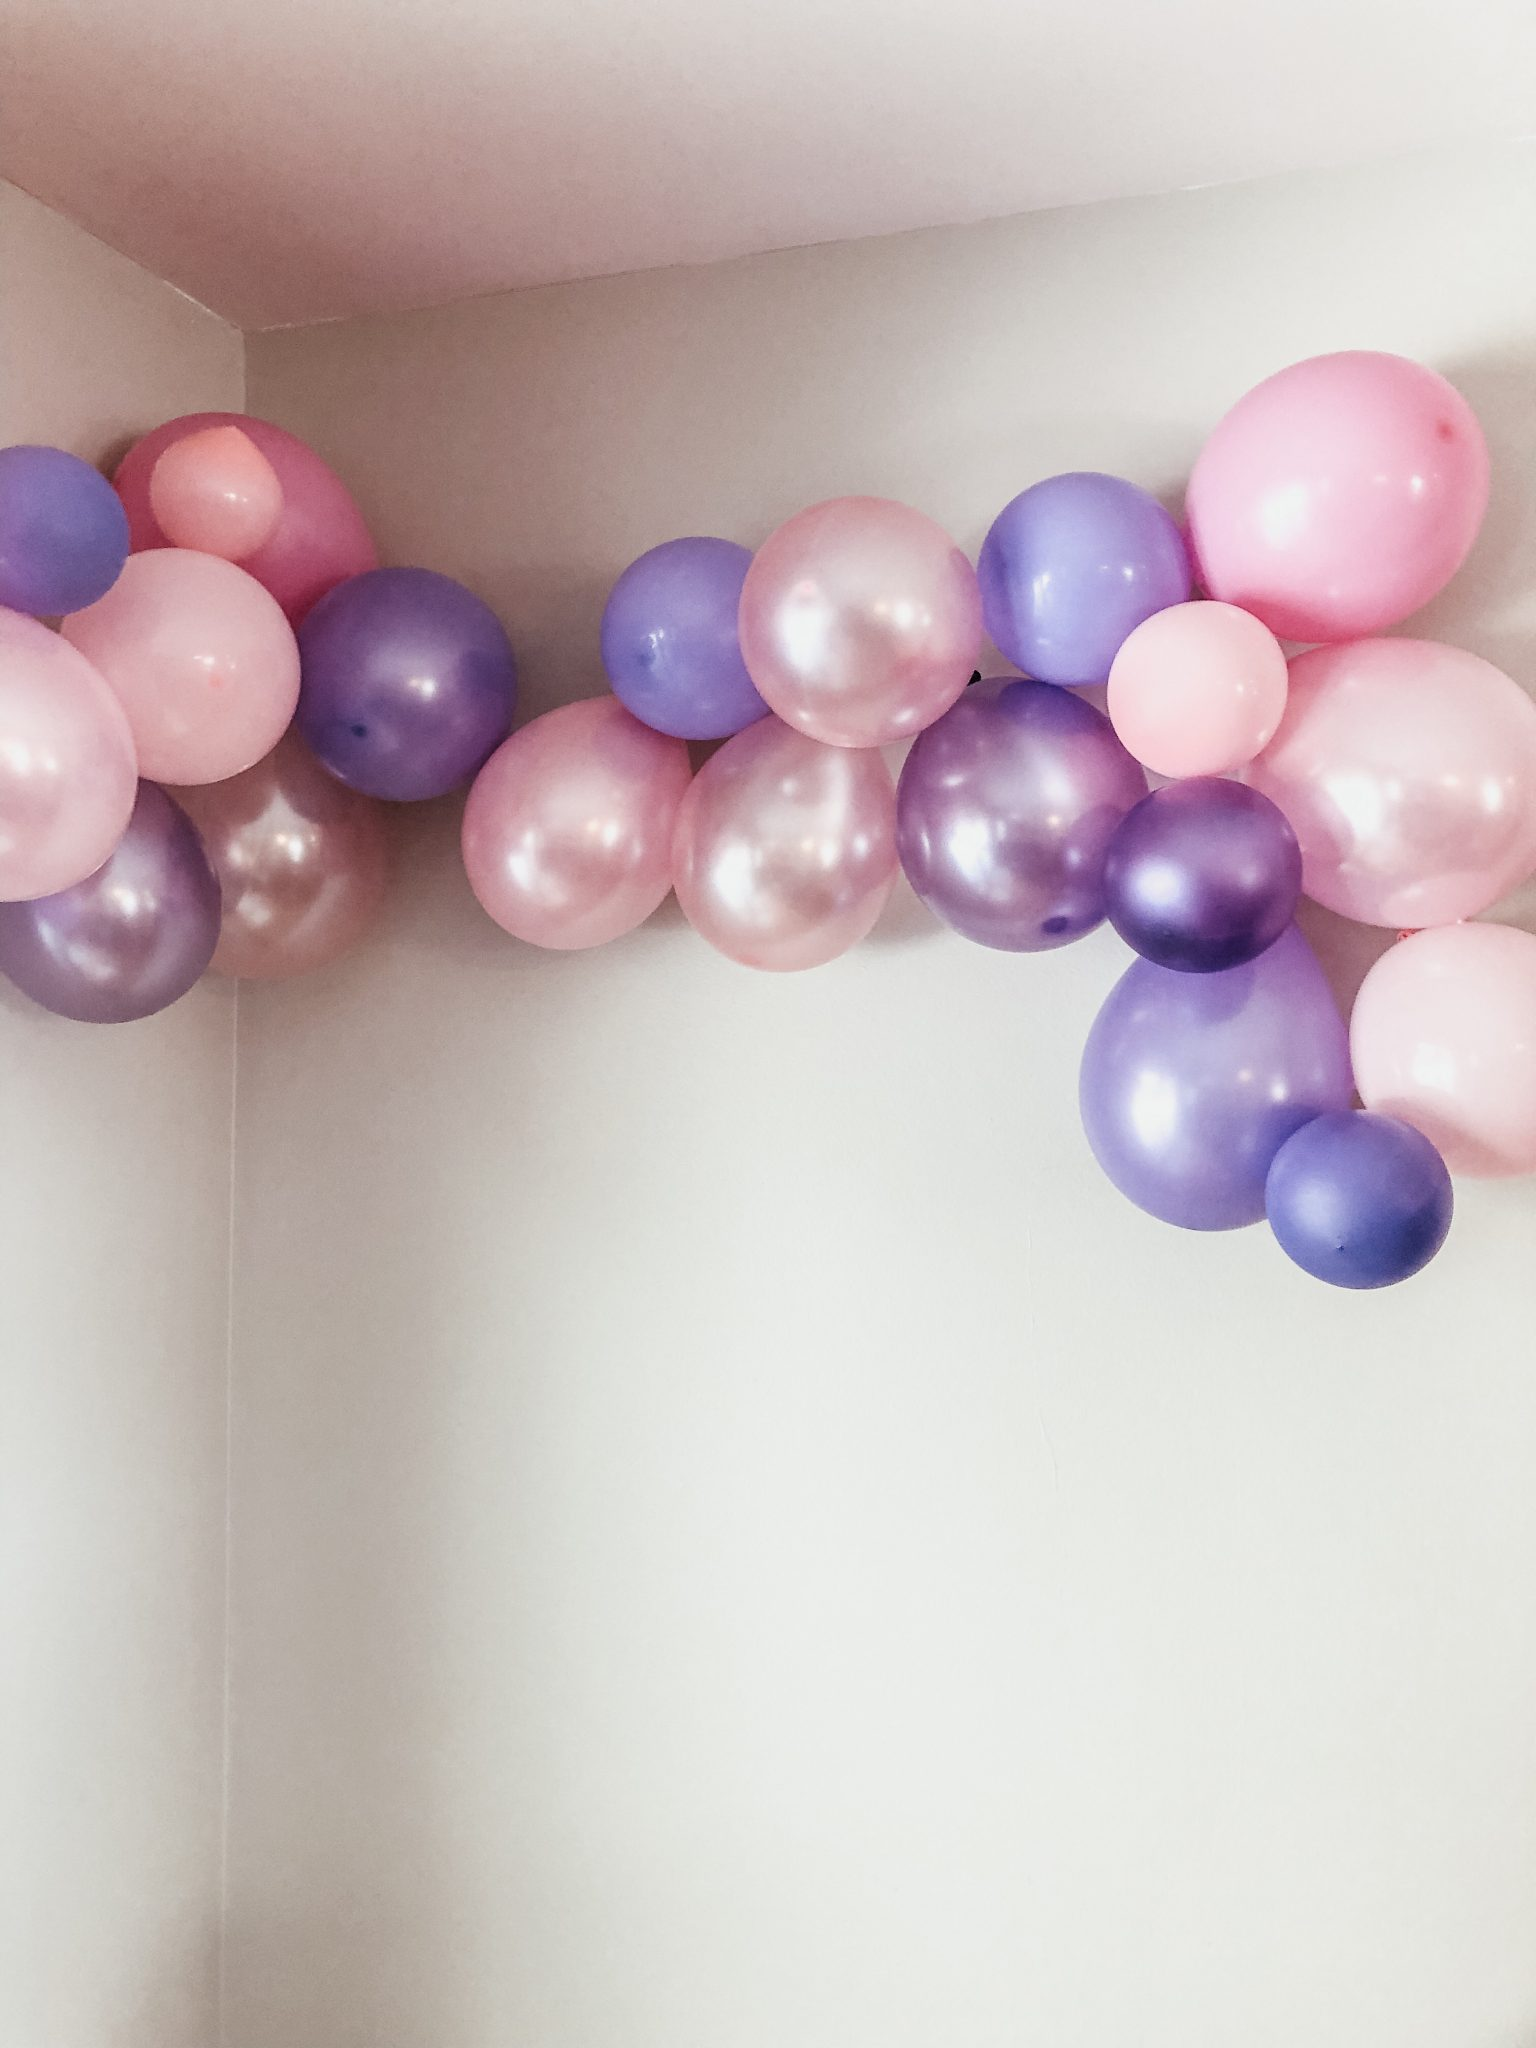 Cutest princess party made easy | Daily Splendor Life and Style Blog | Balloons| birthday party, girls party, party box, party decorations #birthdaydecorations #partysupplies #balloongarland #princessparty #sponsored